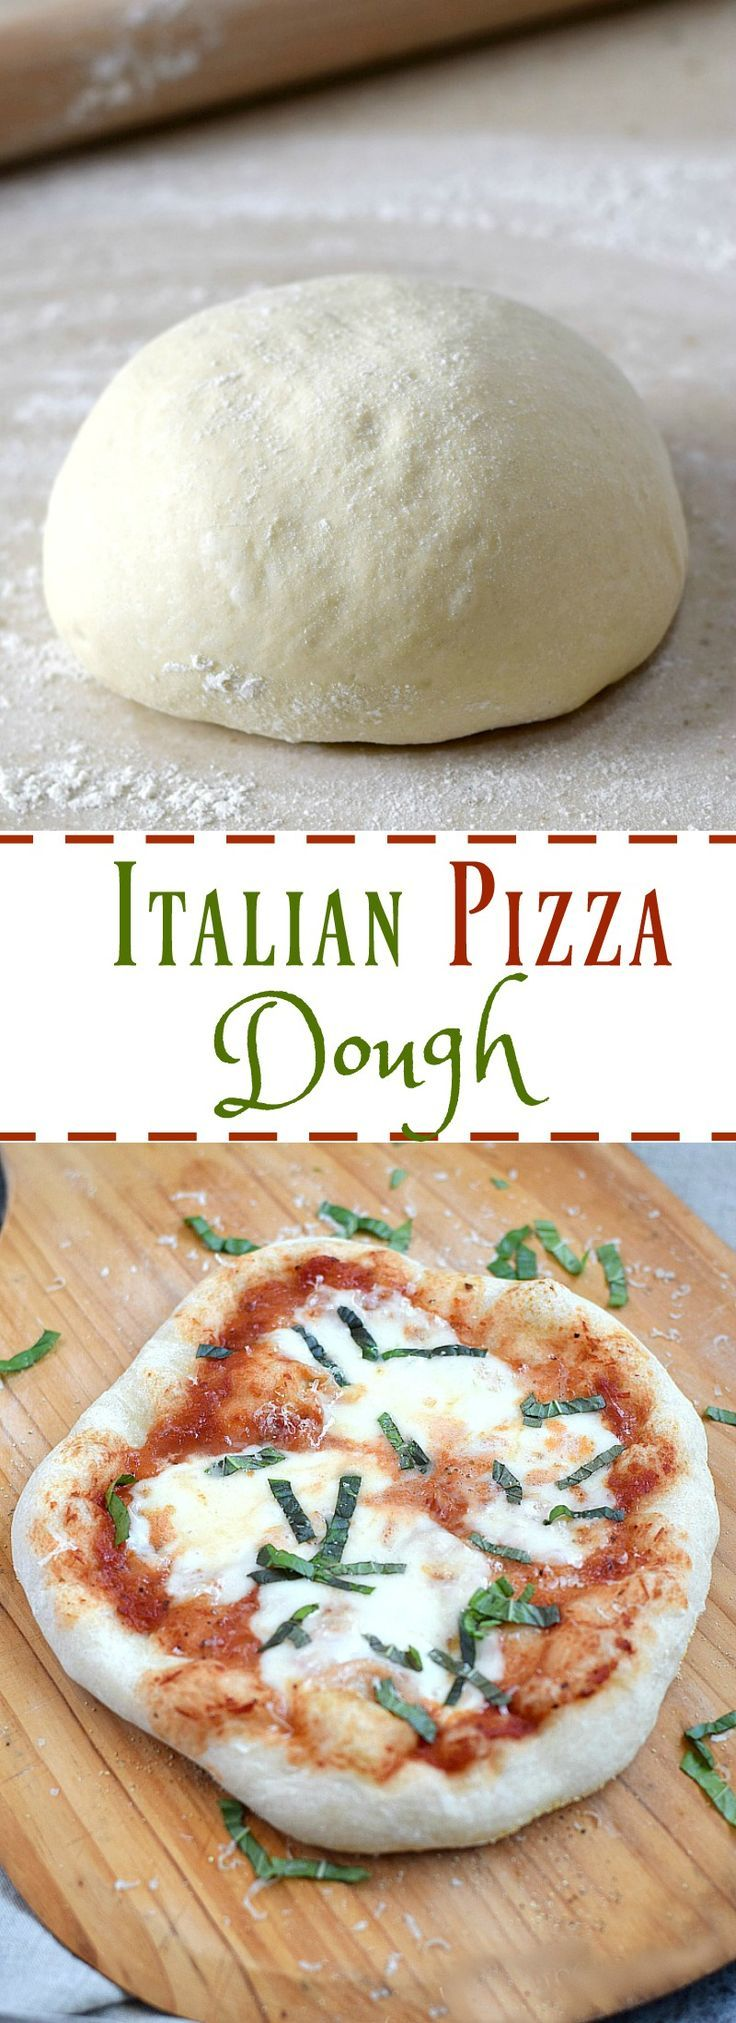 A traditional Italian Pizza Dough recipe using Tipo 00 Pizzeria Flour for a light and airy crust with a crispy exterior for the ultimate pizza experience